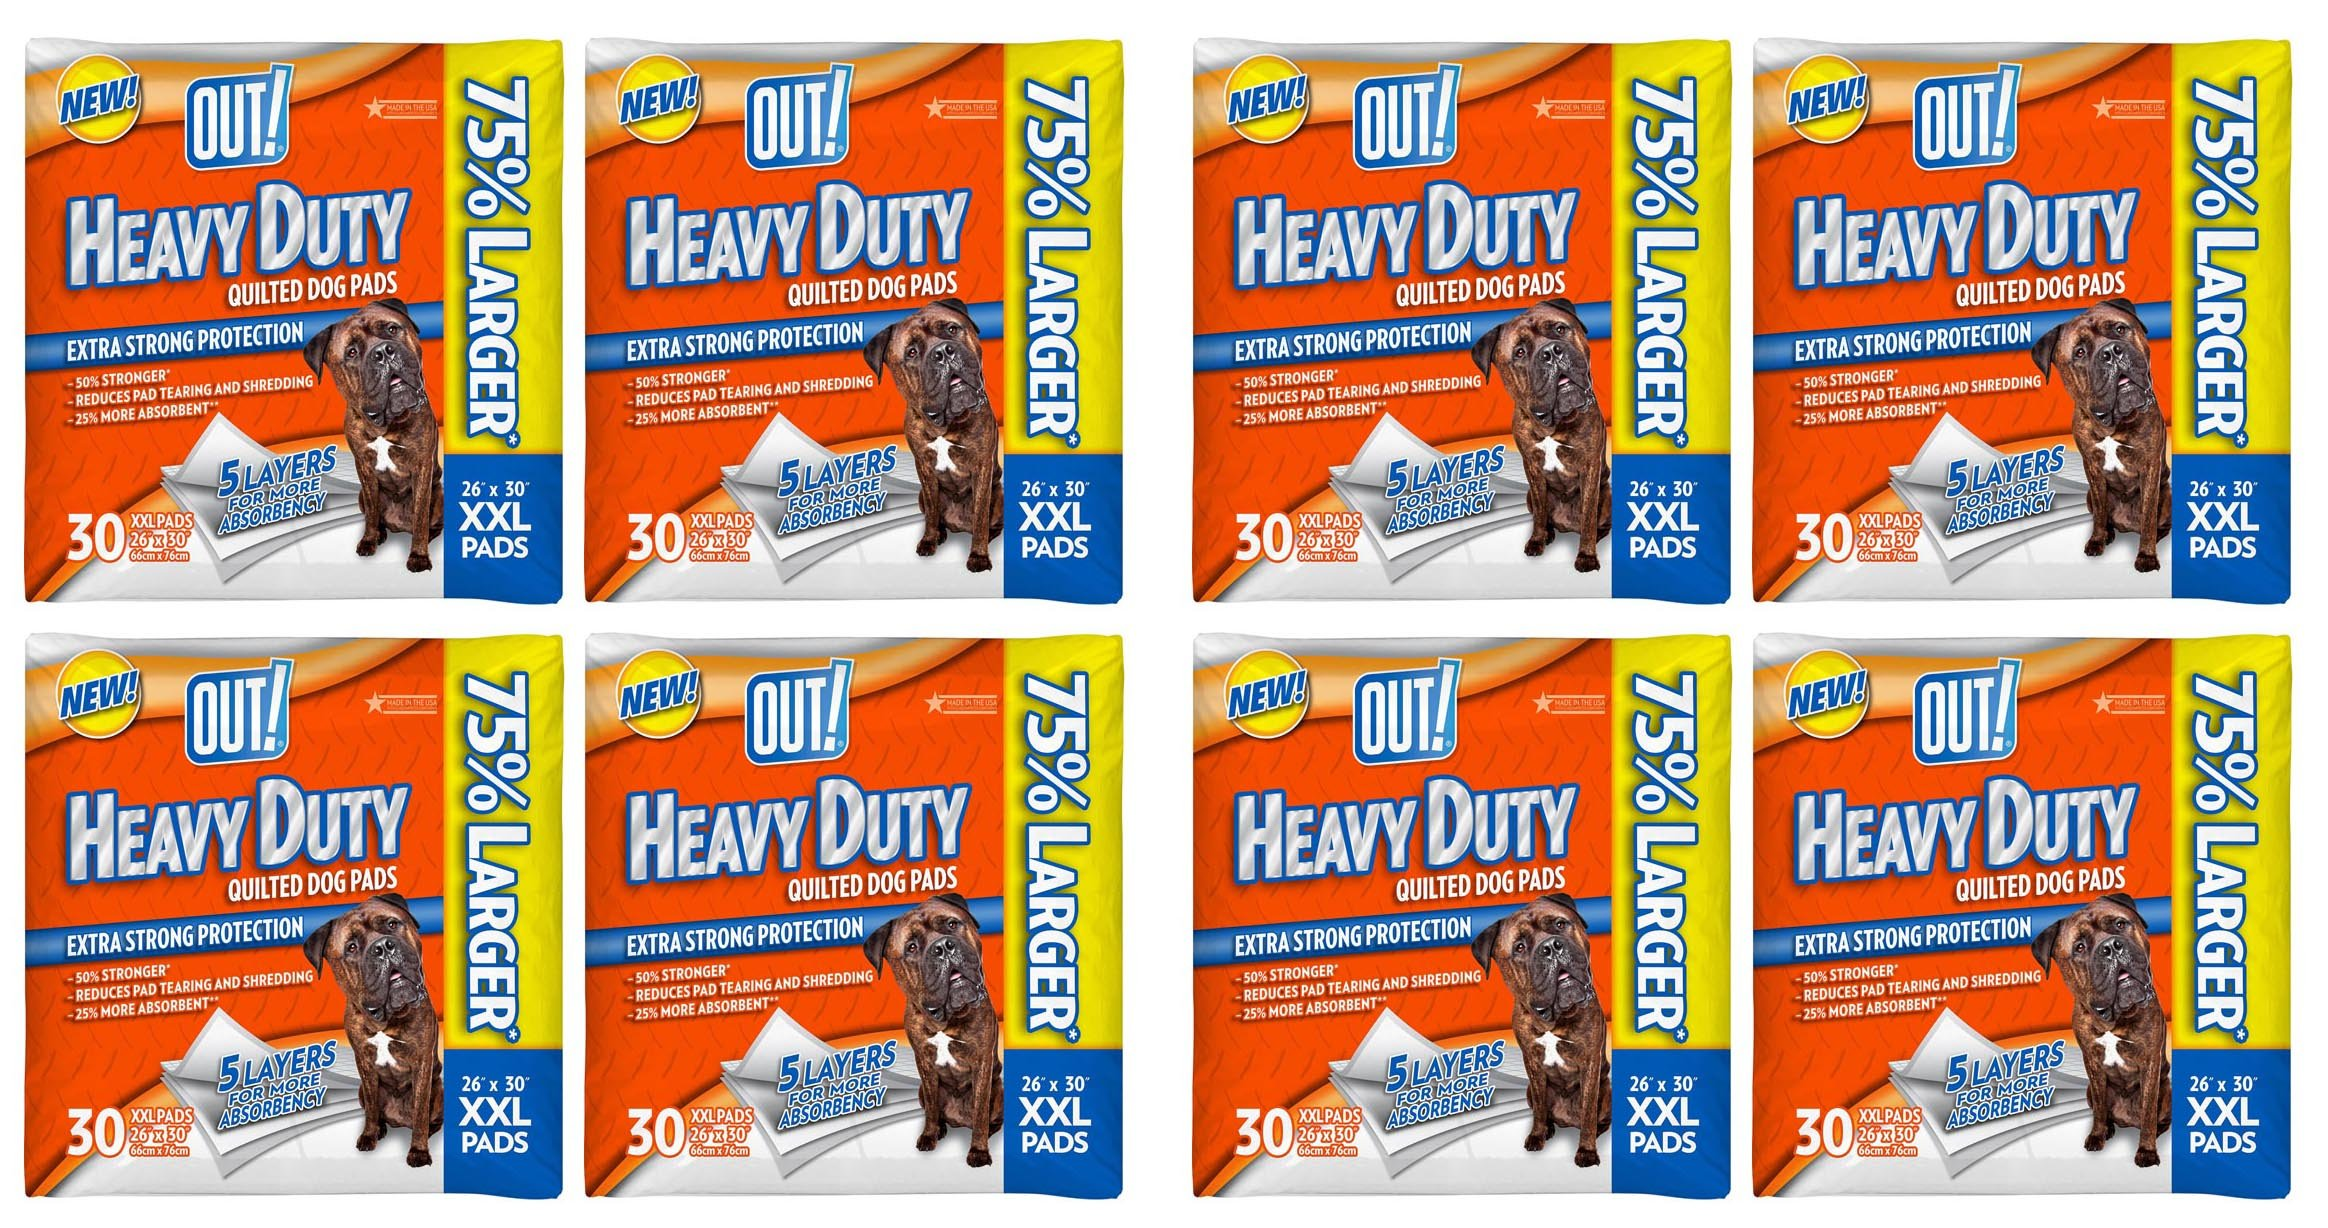 OUT! 30 Count Heavy Duty XX-Large Dog Pads - 8 packs!